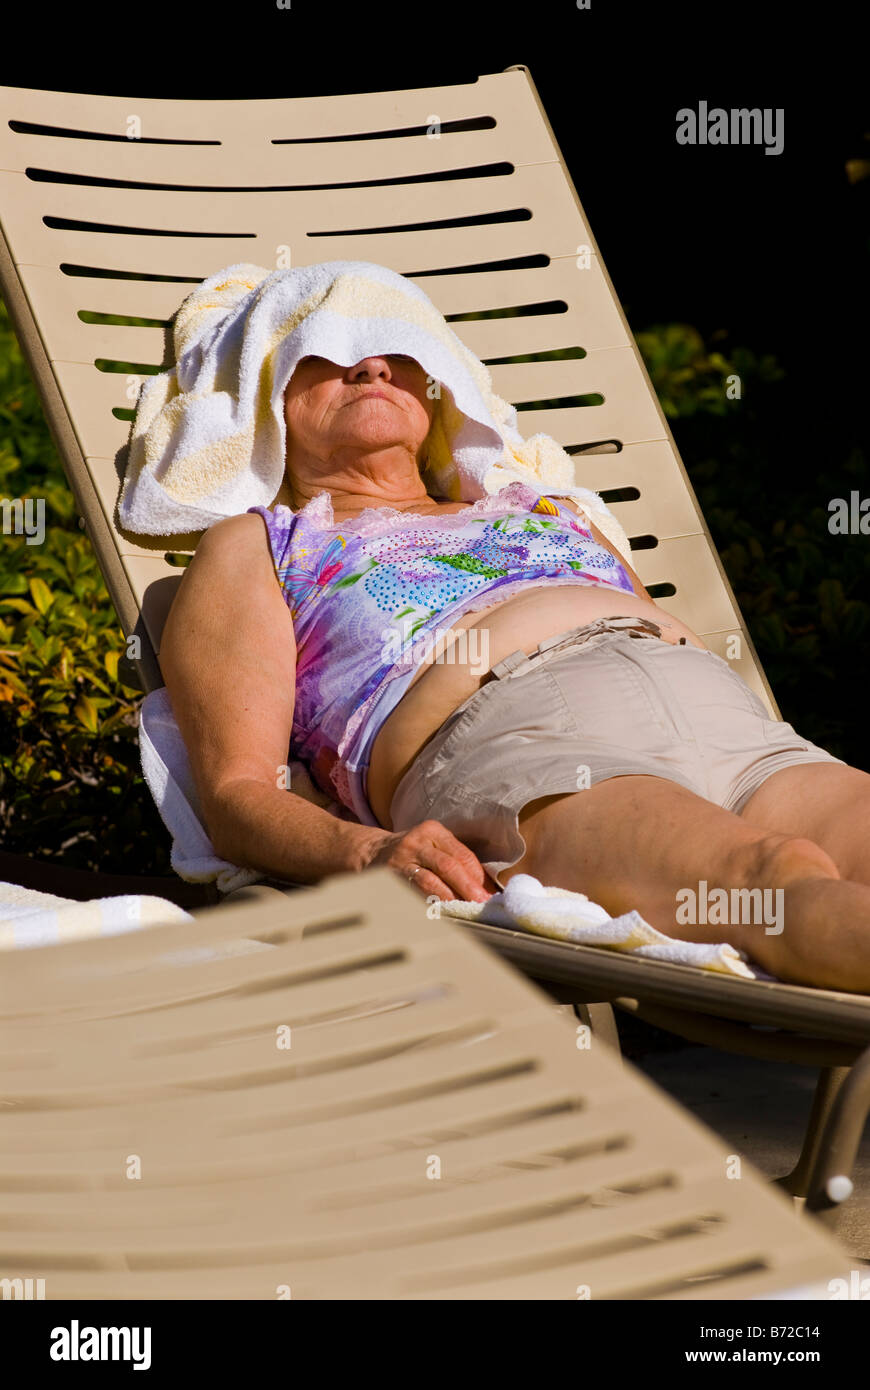 fat lady on beach in stock photos & fat lady on beach in stock